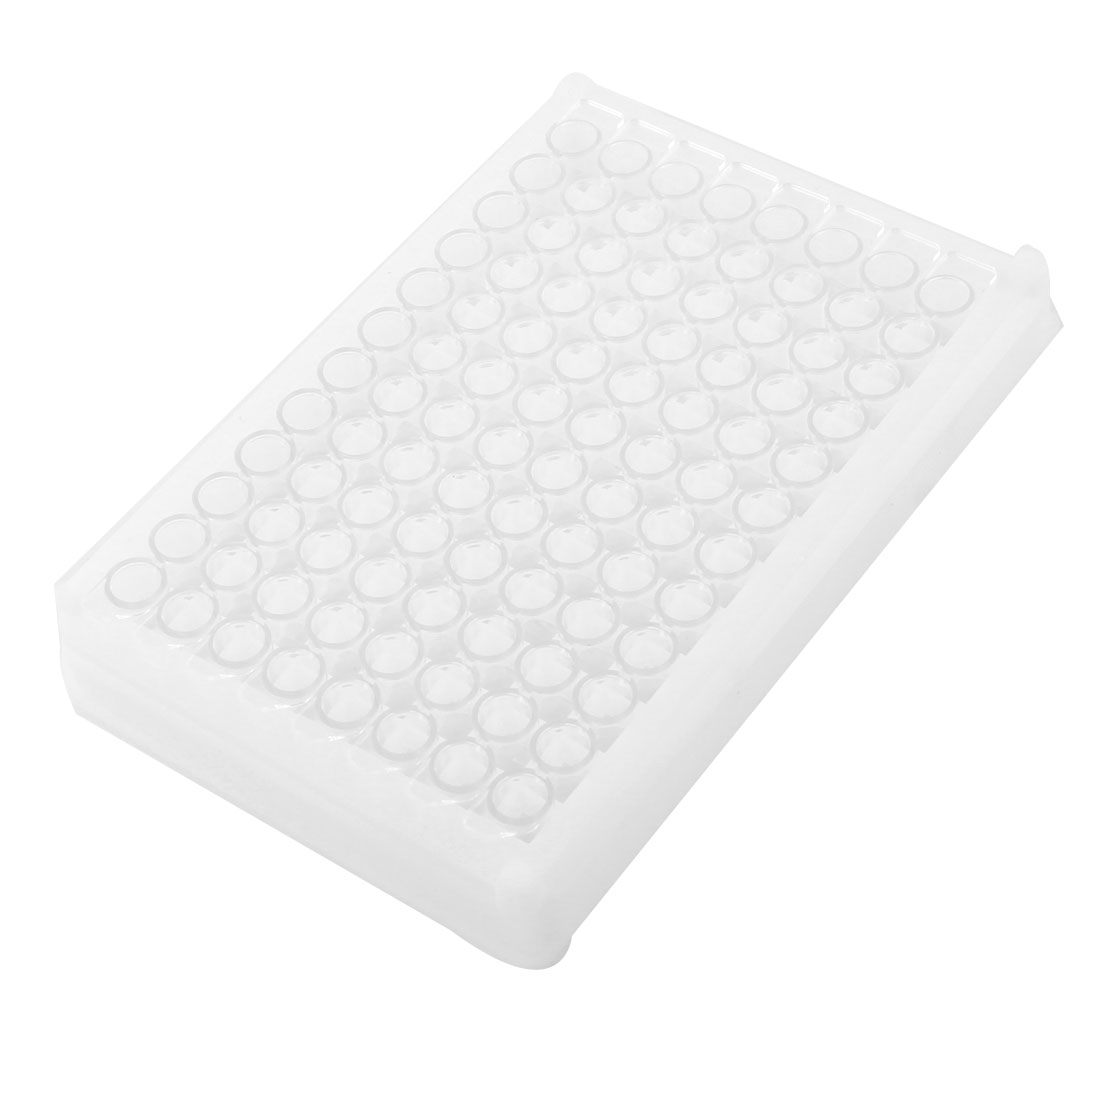 Unique Bargains Chemical Experiment 96 Compartments Medium Binding Elisa Plate White Clear by